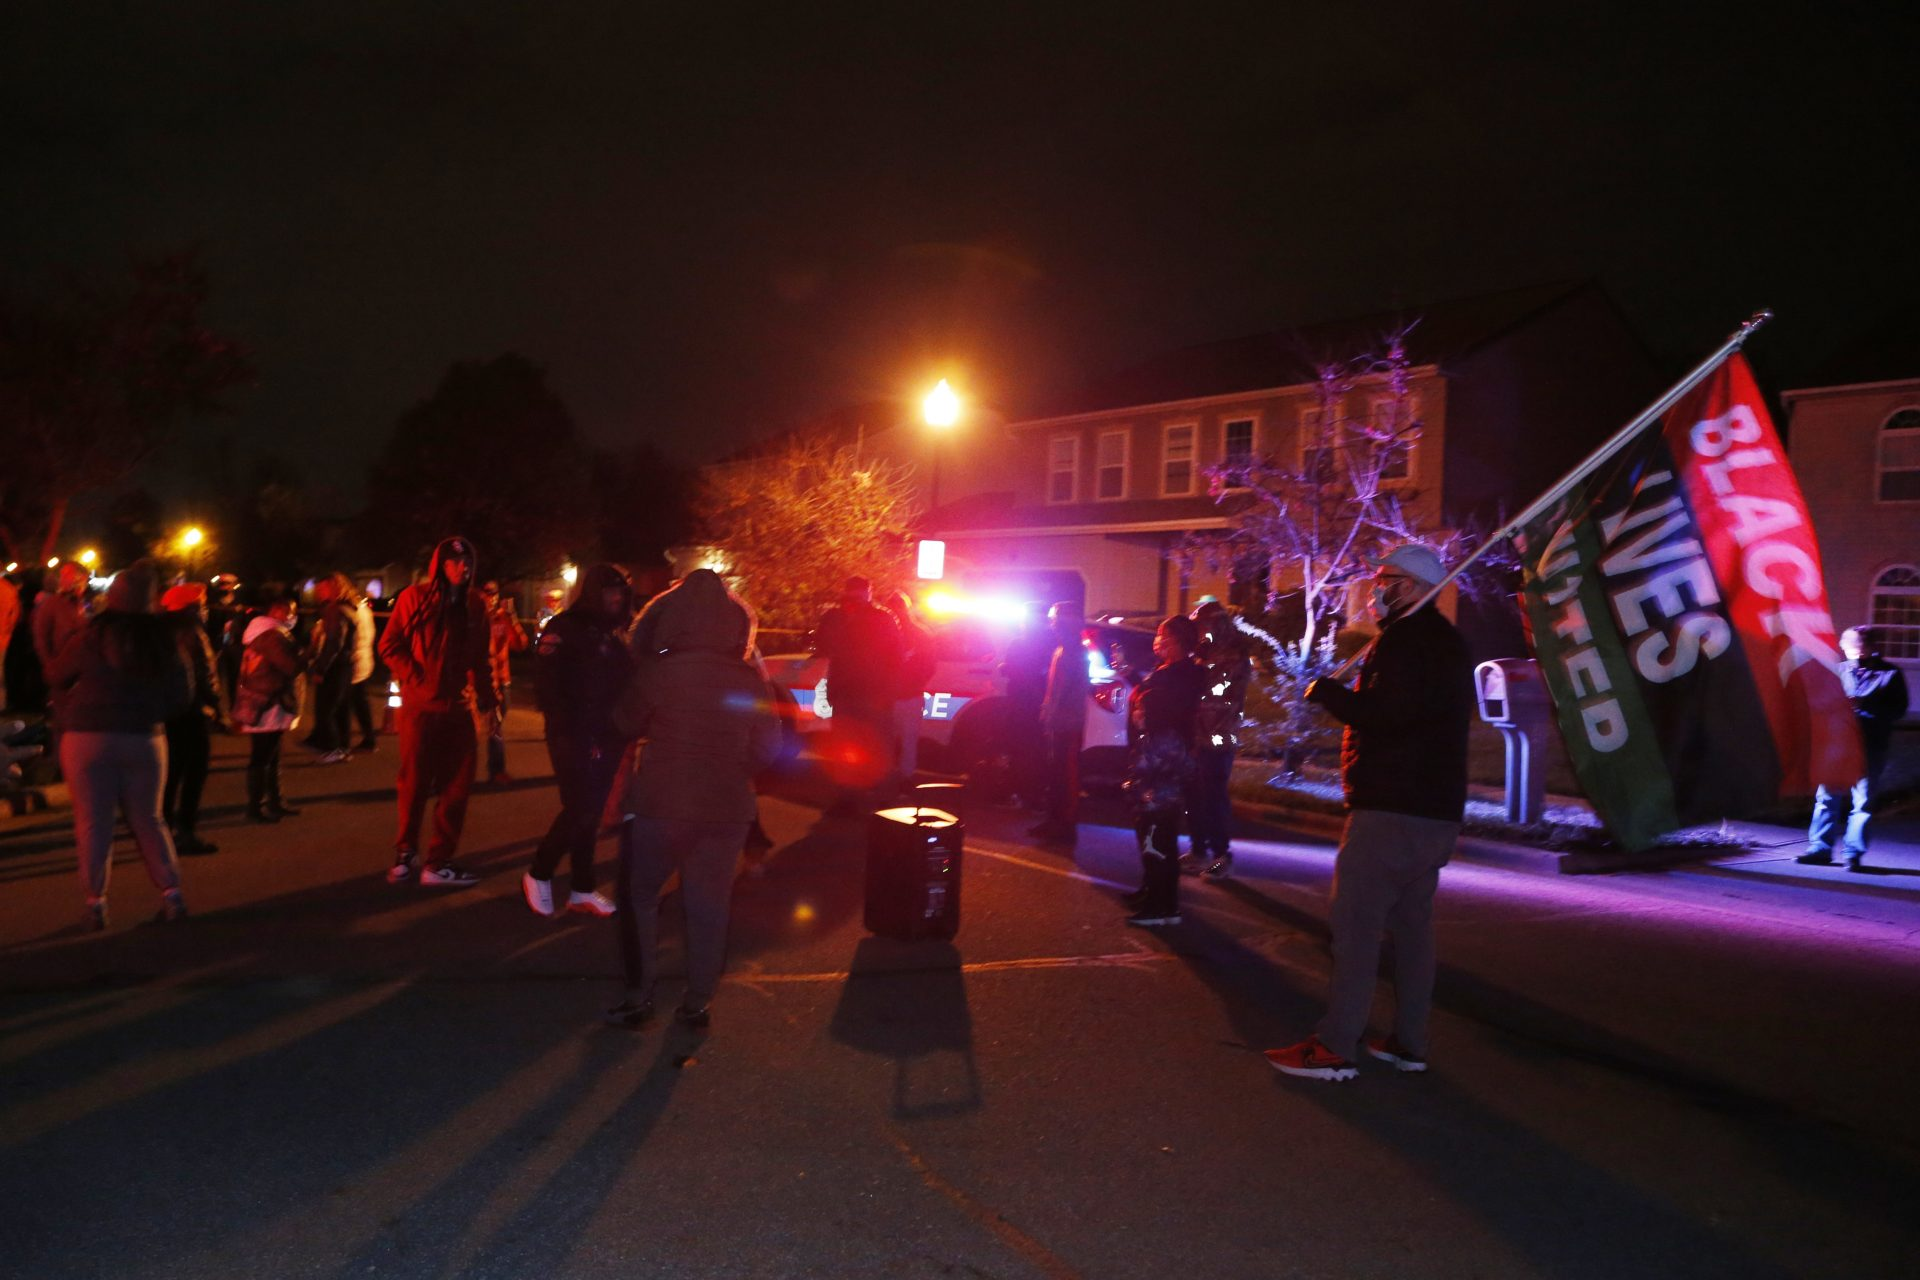 A crowd gathers to protest in the neighborhood where a Columbus police officer fatally shot a teenage girl, Tuesday, April 20, 2021, in Columbus, Ohio.